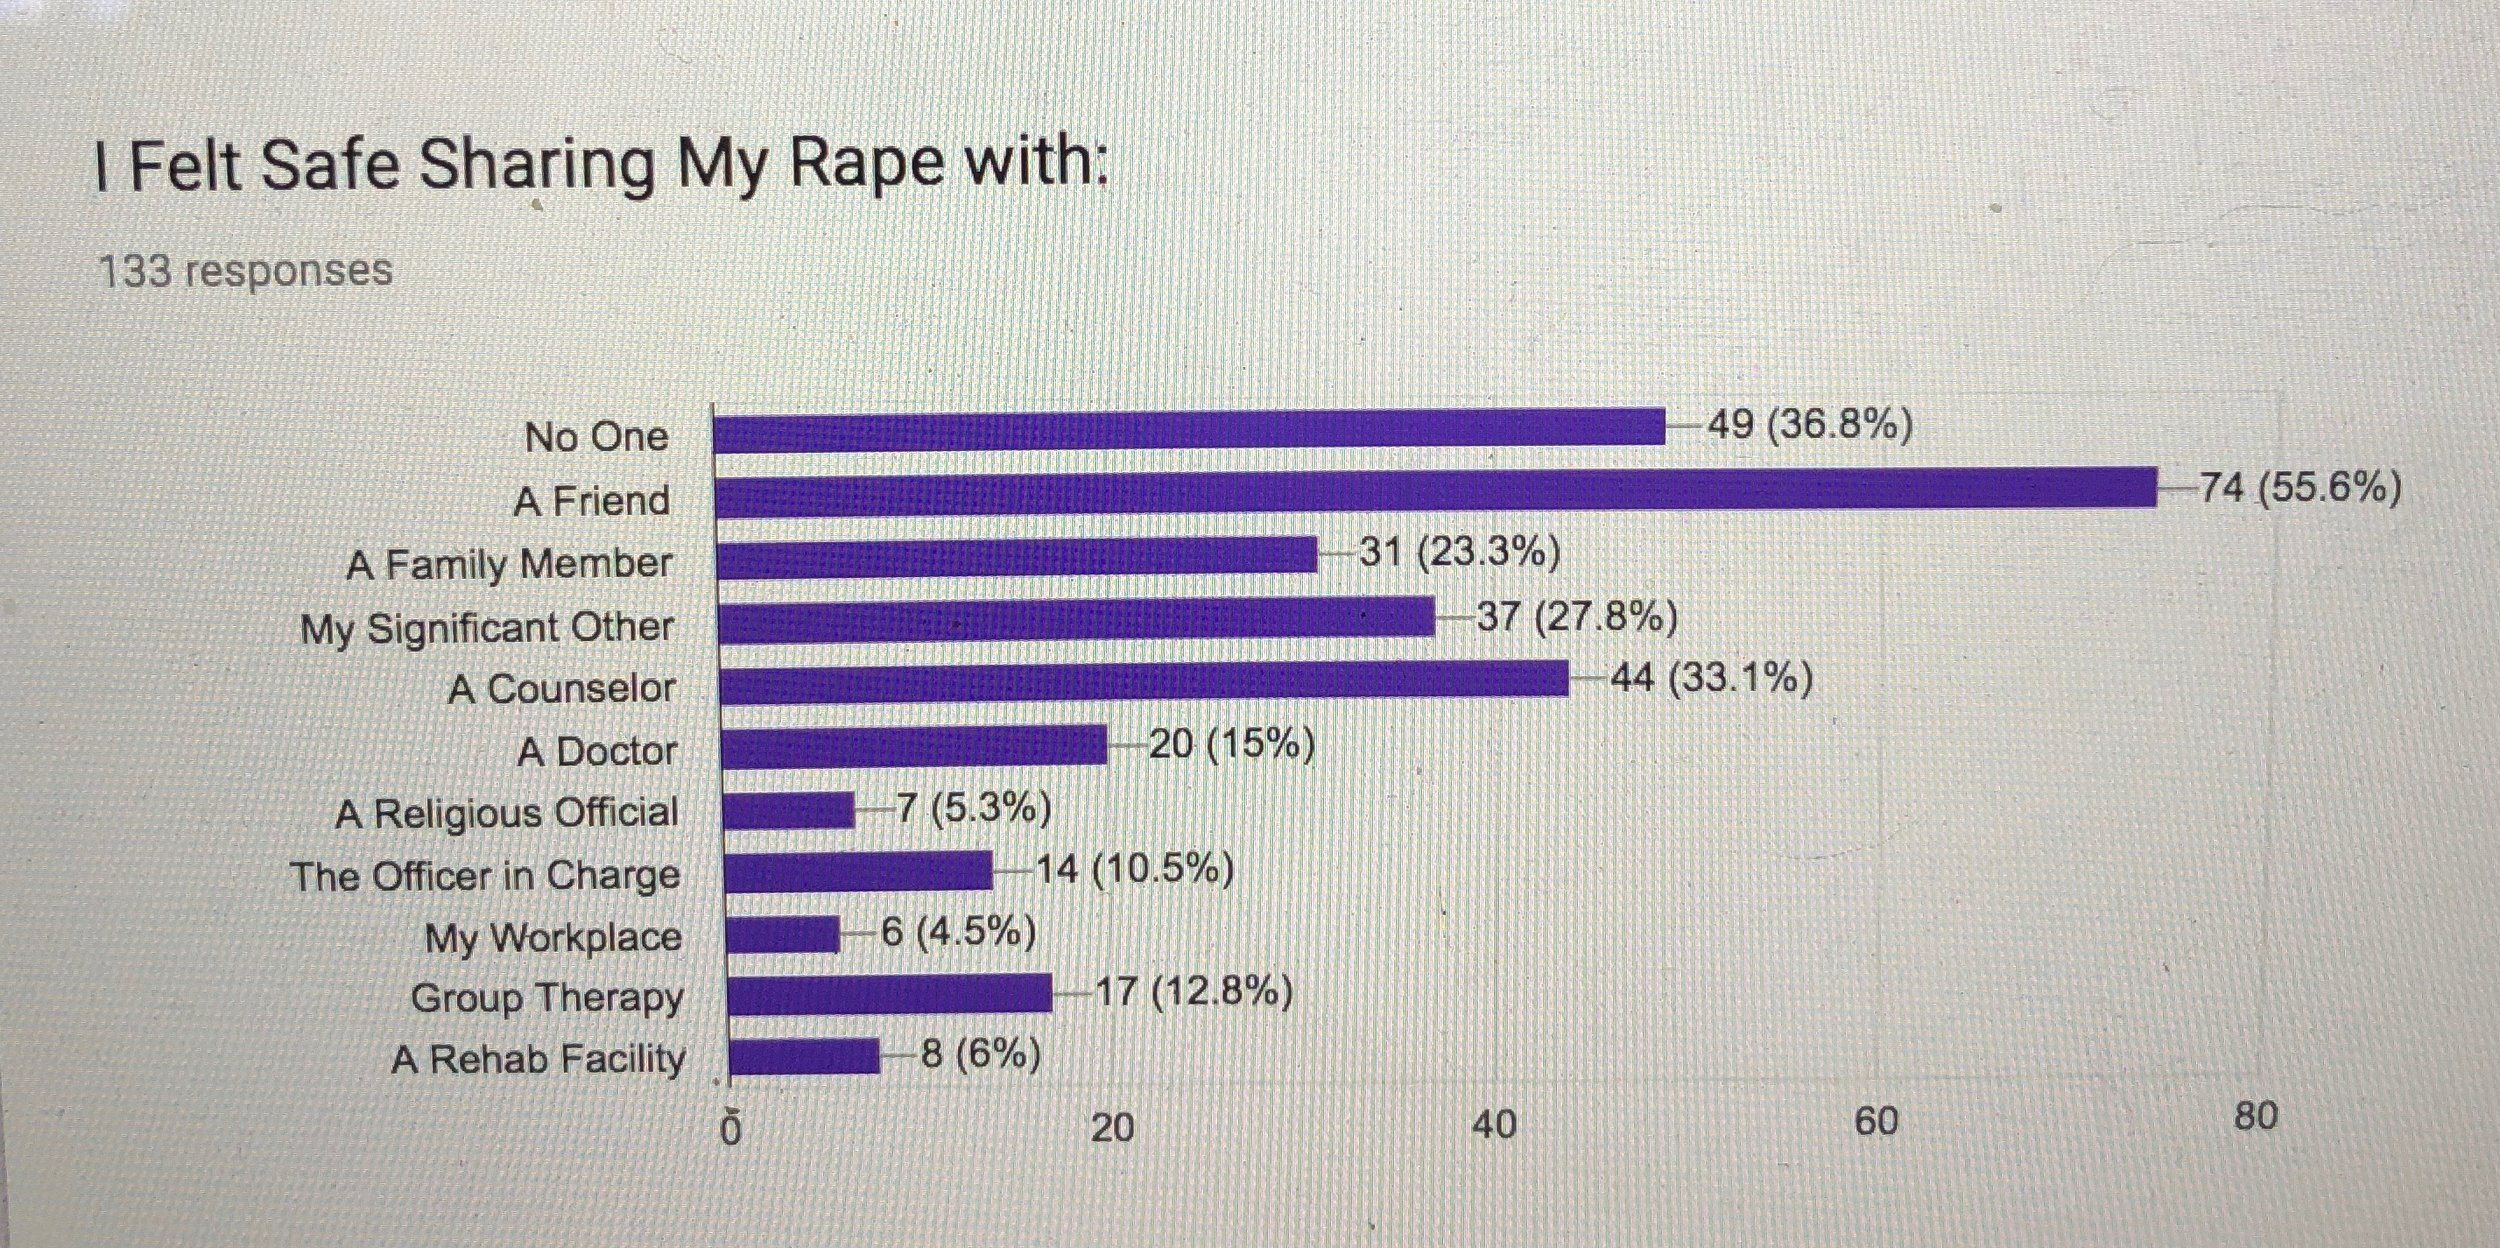 Results of the Anonymous Sunlight Retreats Rape Survivor Survey: https://www.sunlightretreats.org/survey/